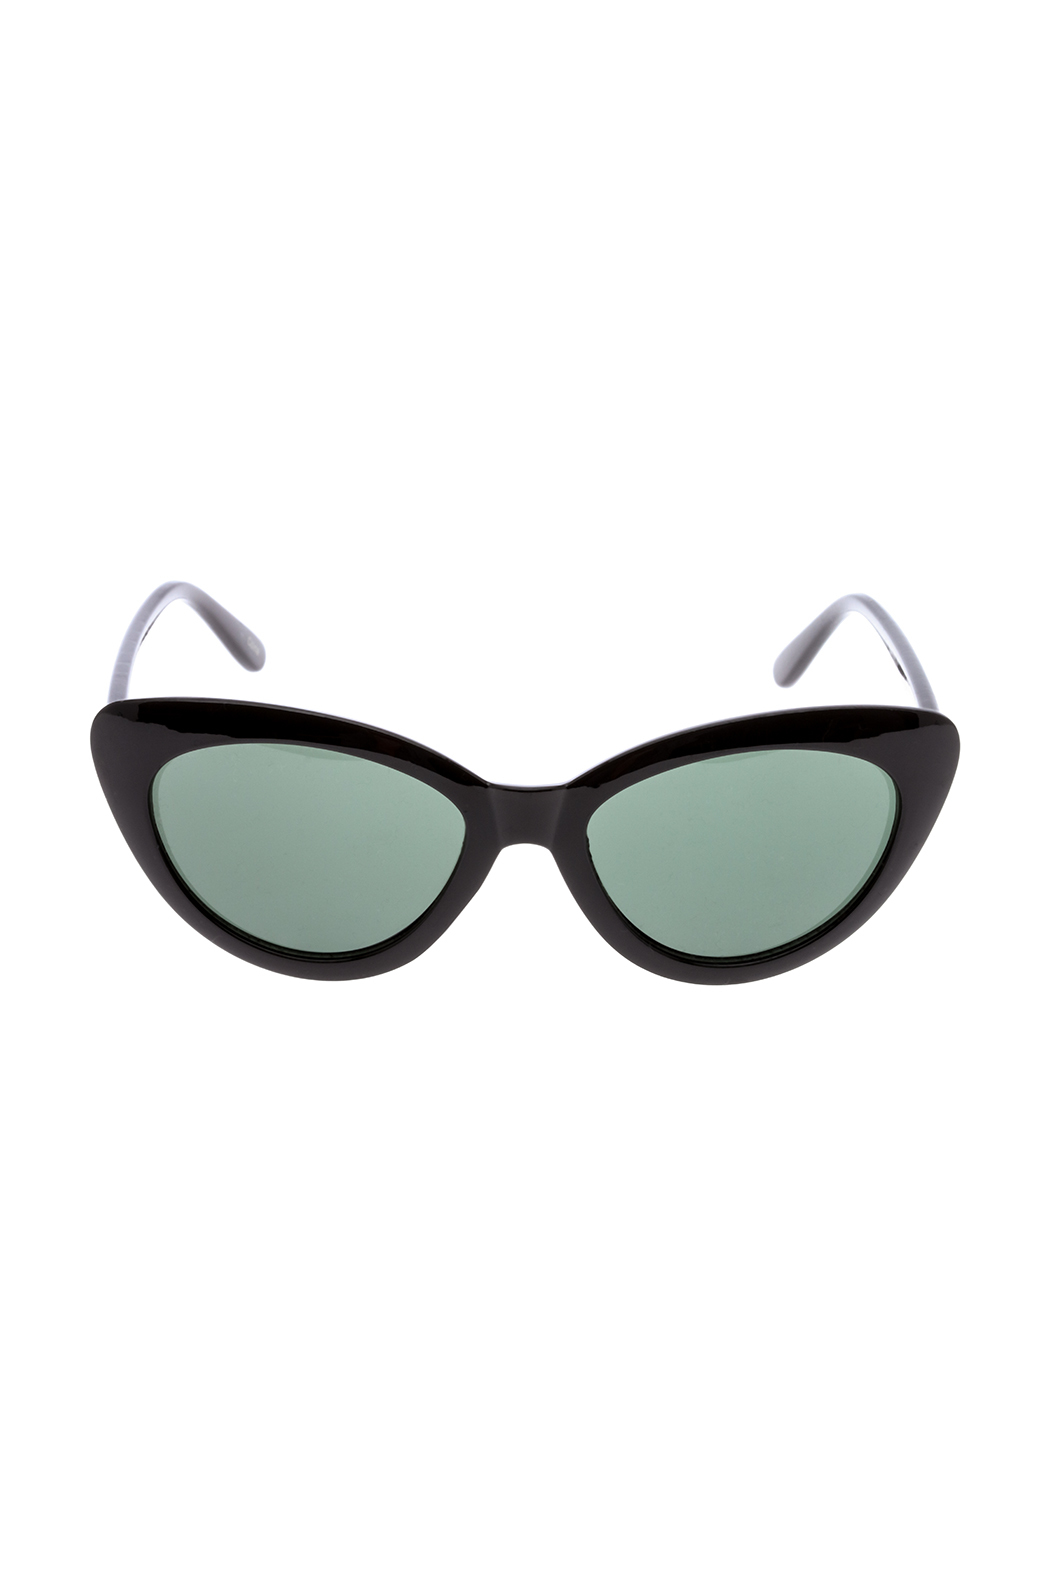 Houe Of Atelier Black Cat Eye Sunglasses From Montclair By